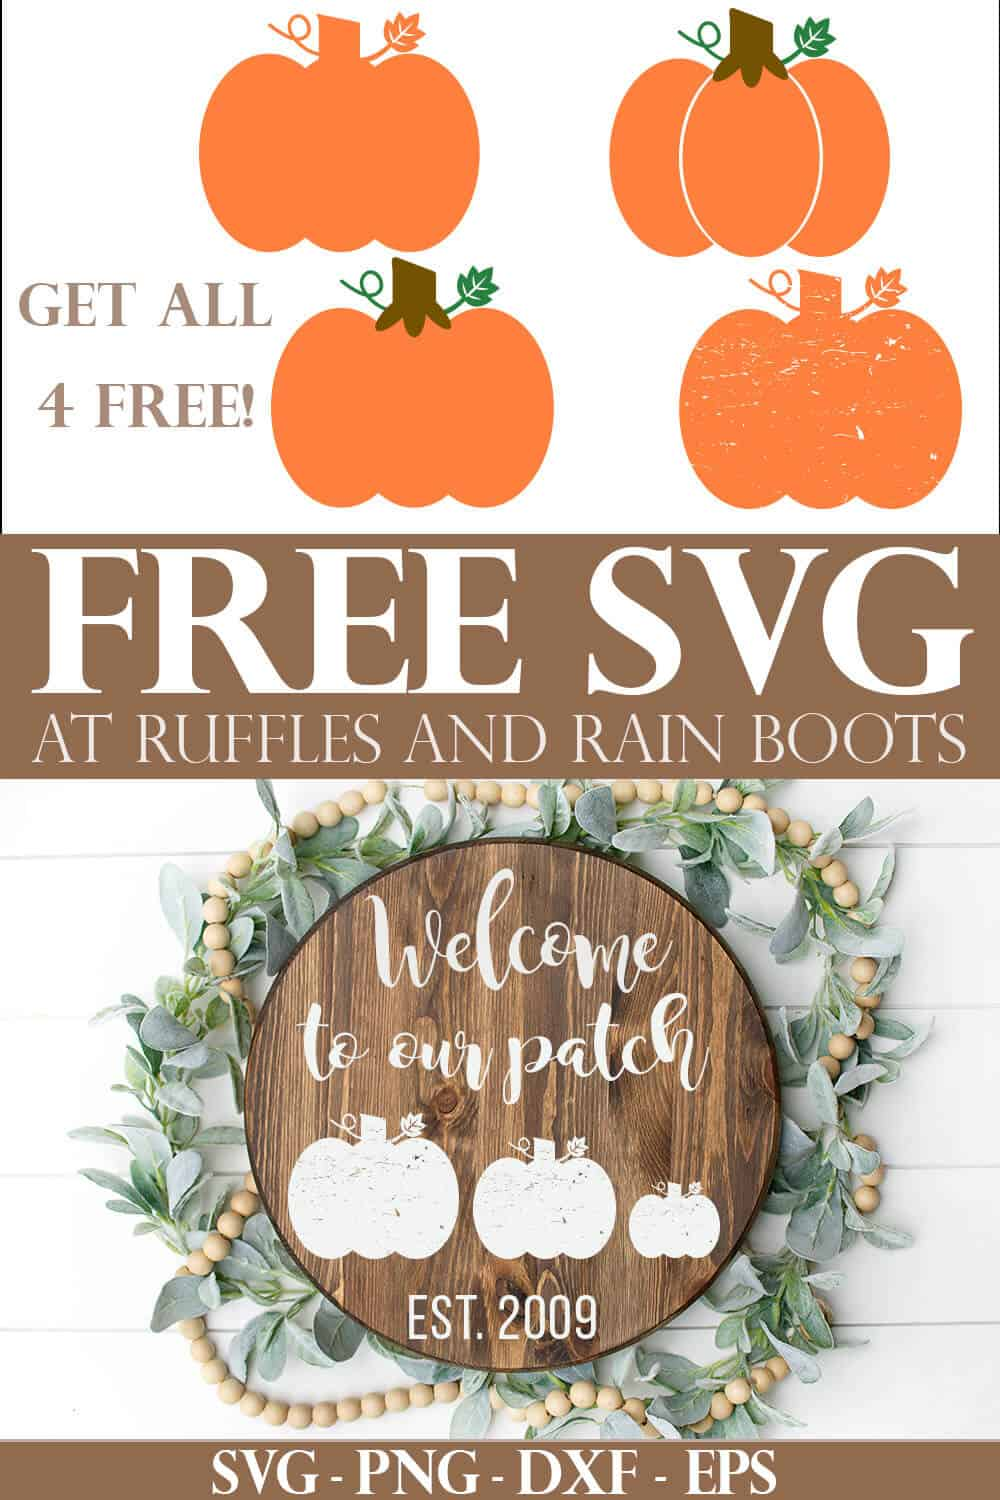 welcome to our patch farmhouse wood sign made with free pumpkin svg files with text which reads get all 4 svg free at ruffles and rain boots